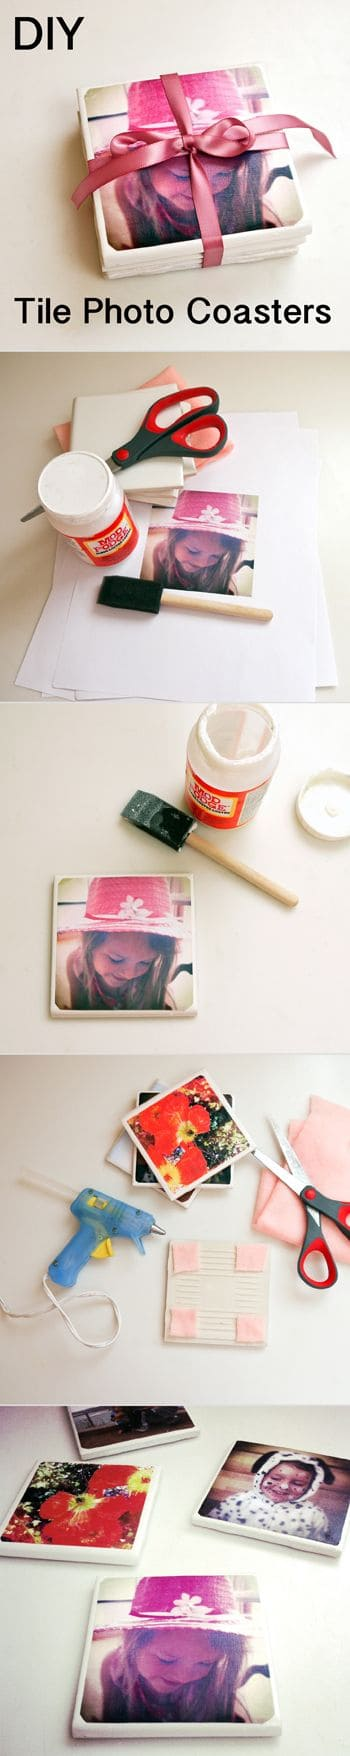 36 simple tile photo coasters for an adorable giveaway